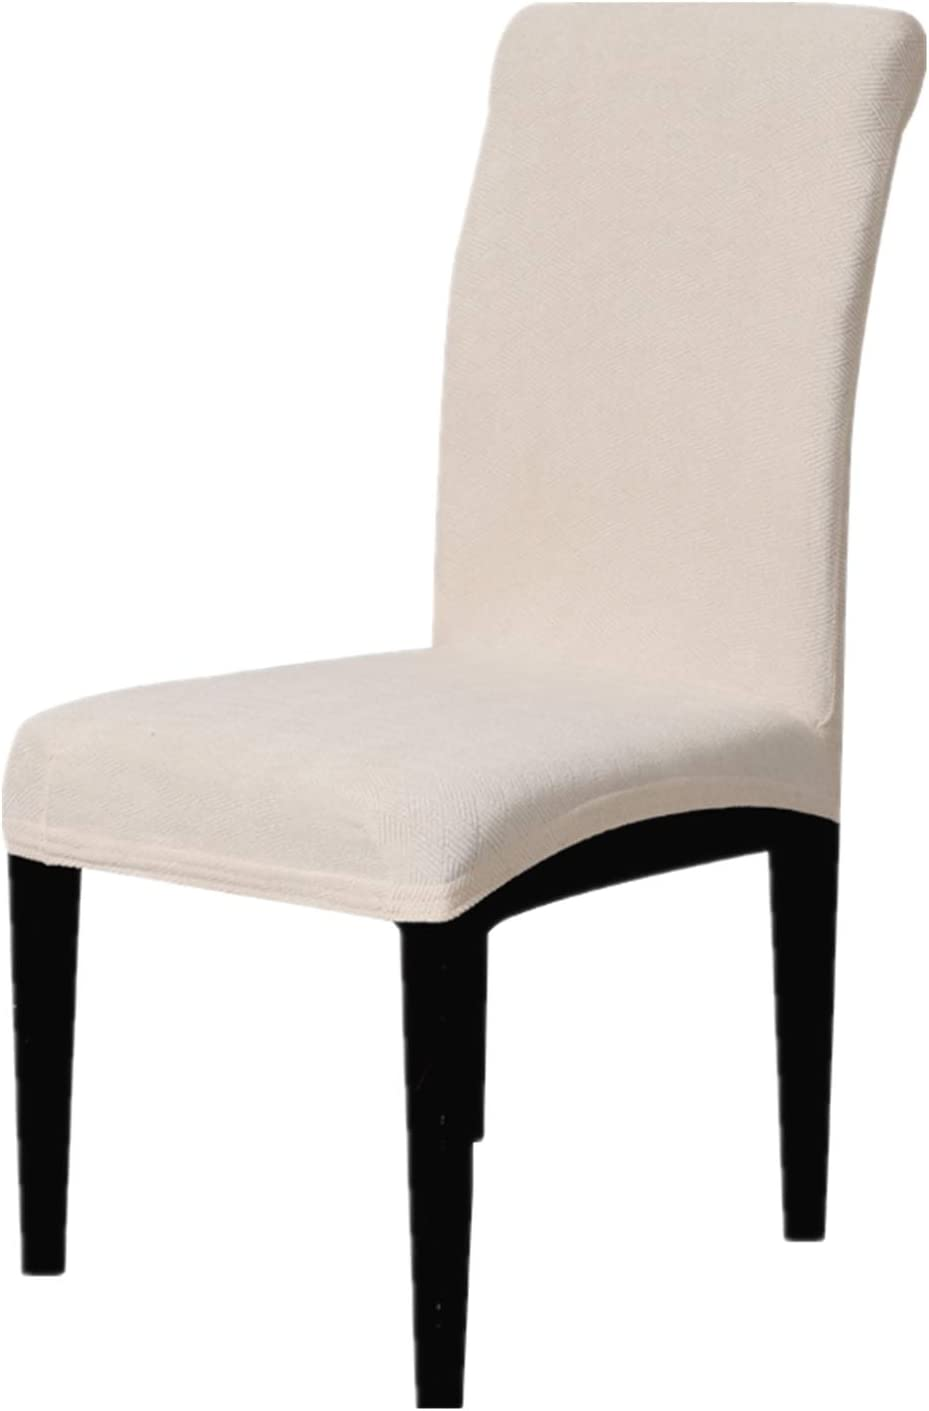 Enova Home Modern Jacquard Stretchy Universal Washable Removable Dining Chair Slipcover, Soft and Stretchy Slipcover (Ivory White, 4)